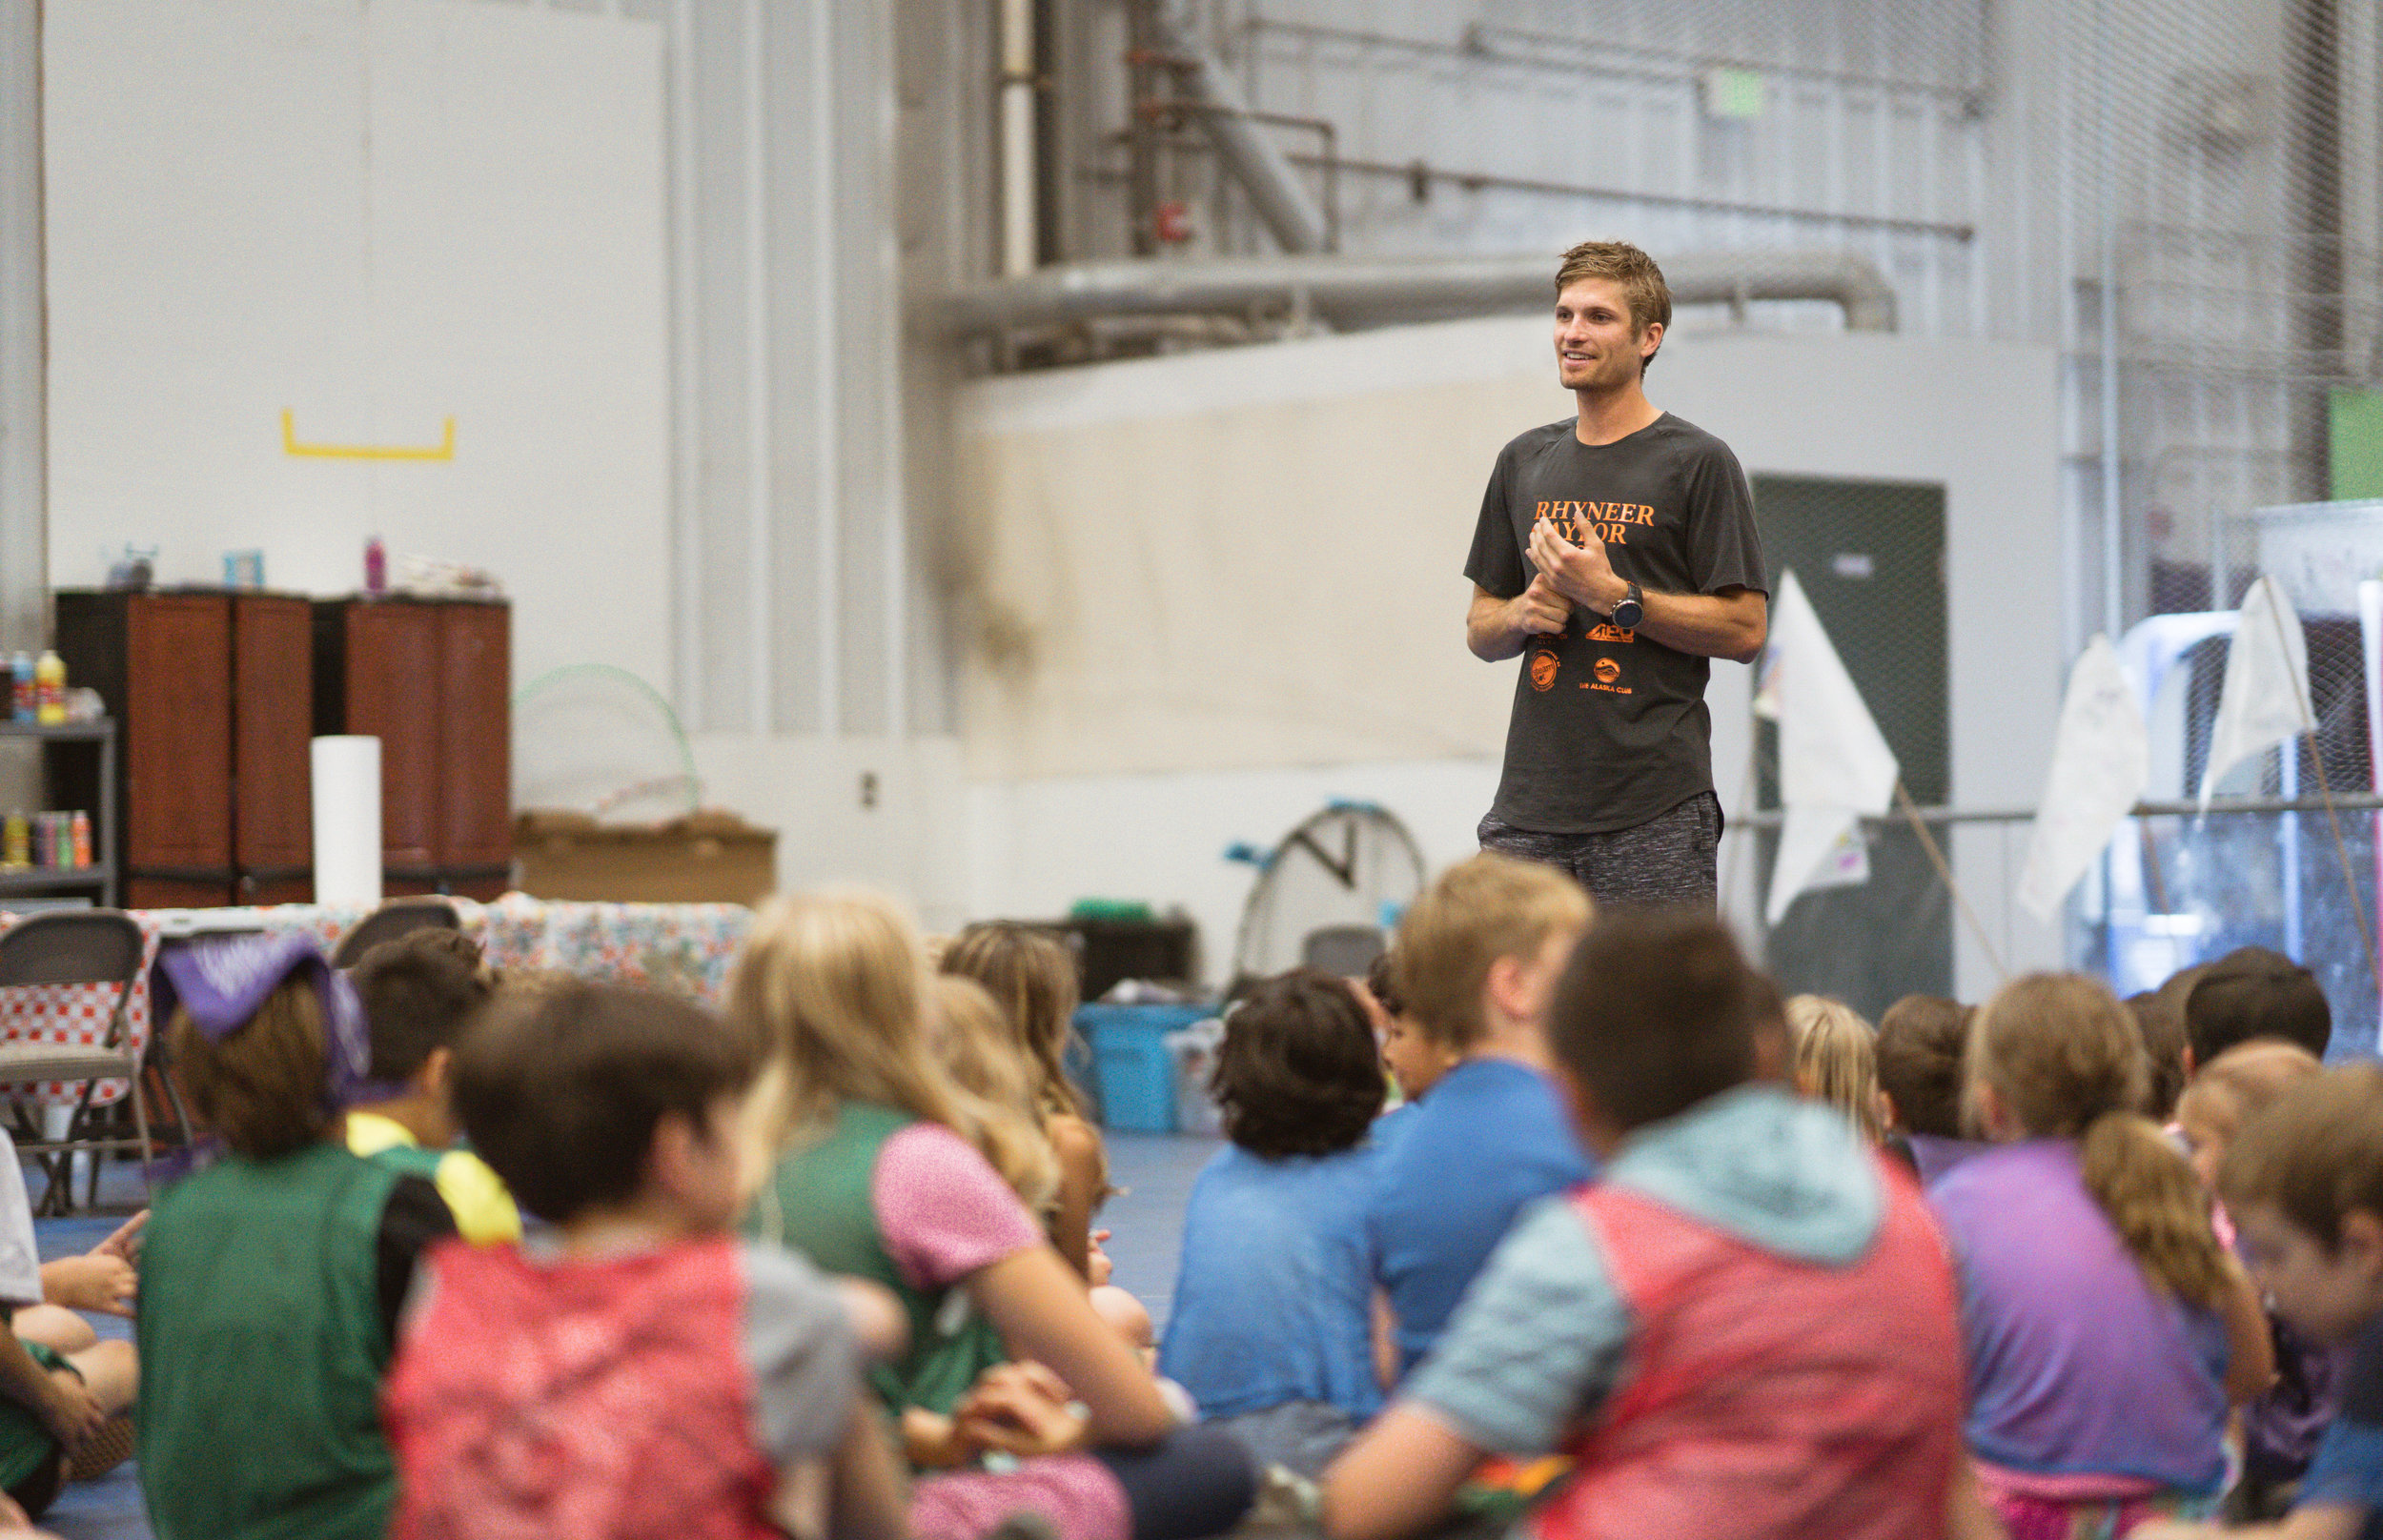 MT. MARATHON CHAMP VISITS KIDS - David Norris spent time with kids at The Alaska Club's summer youth camps.